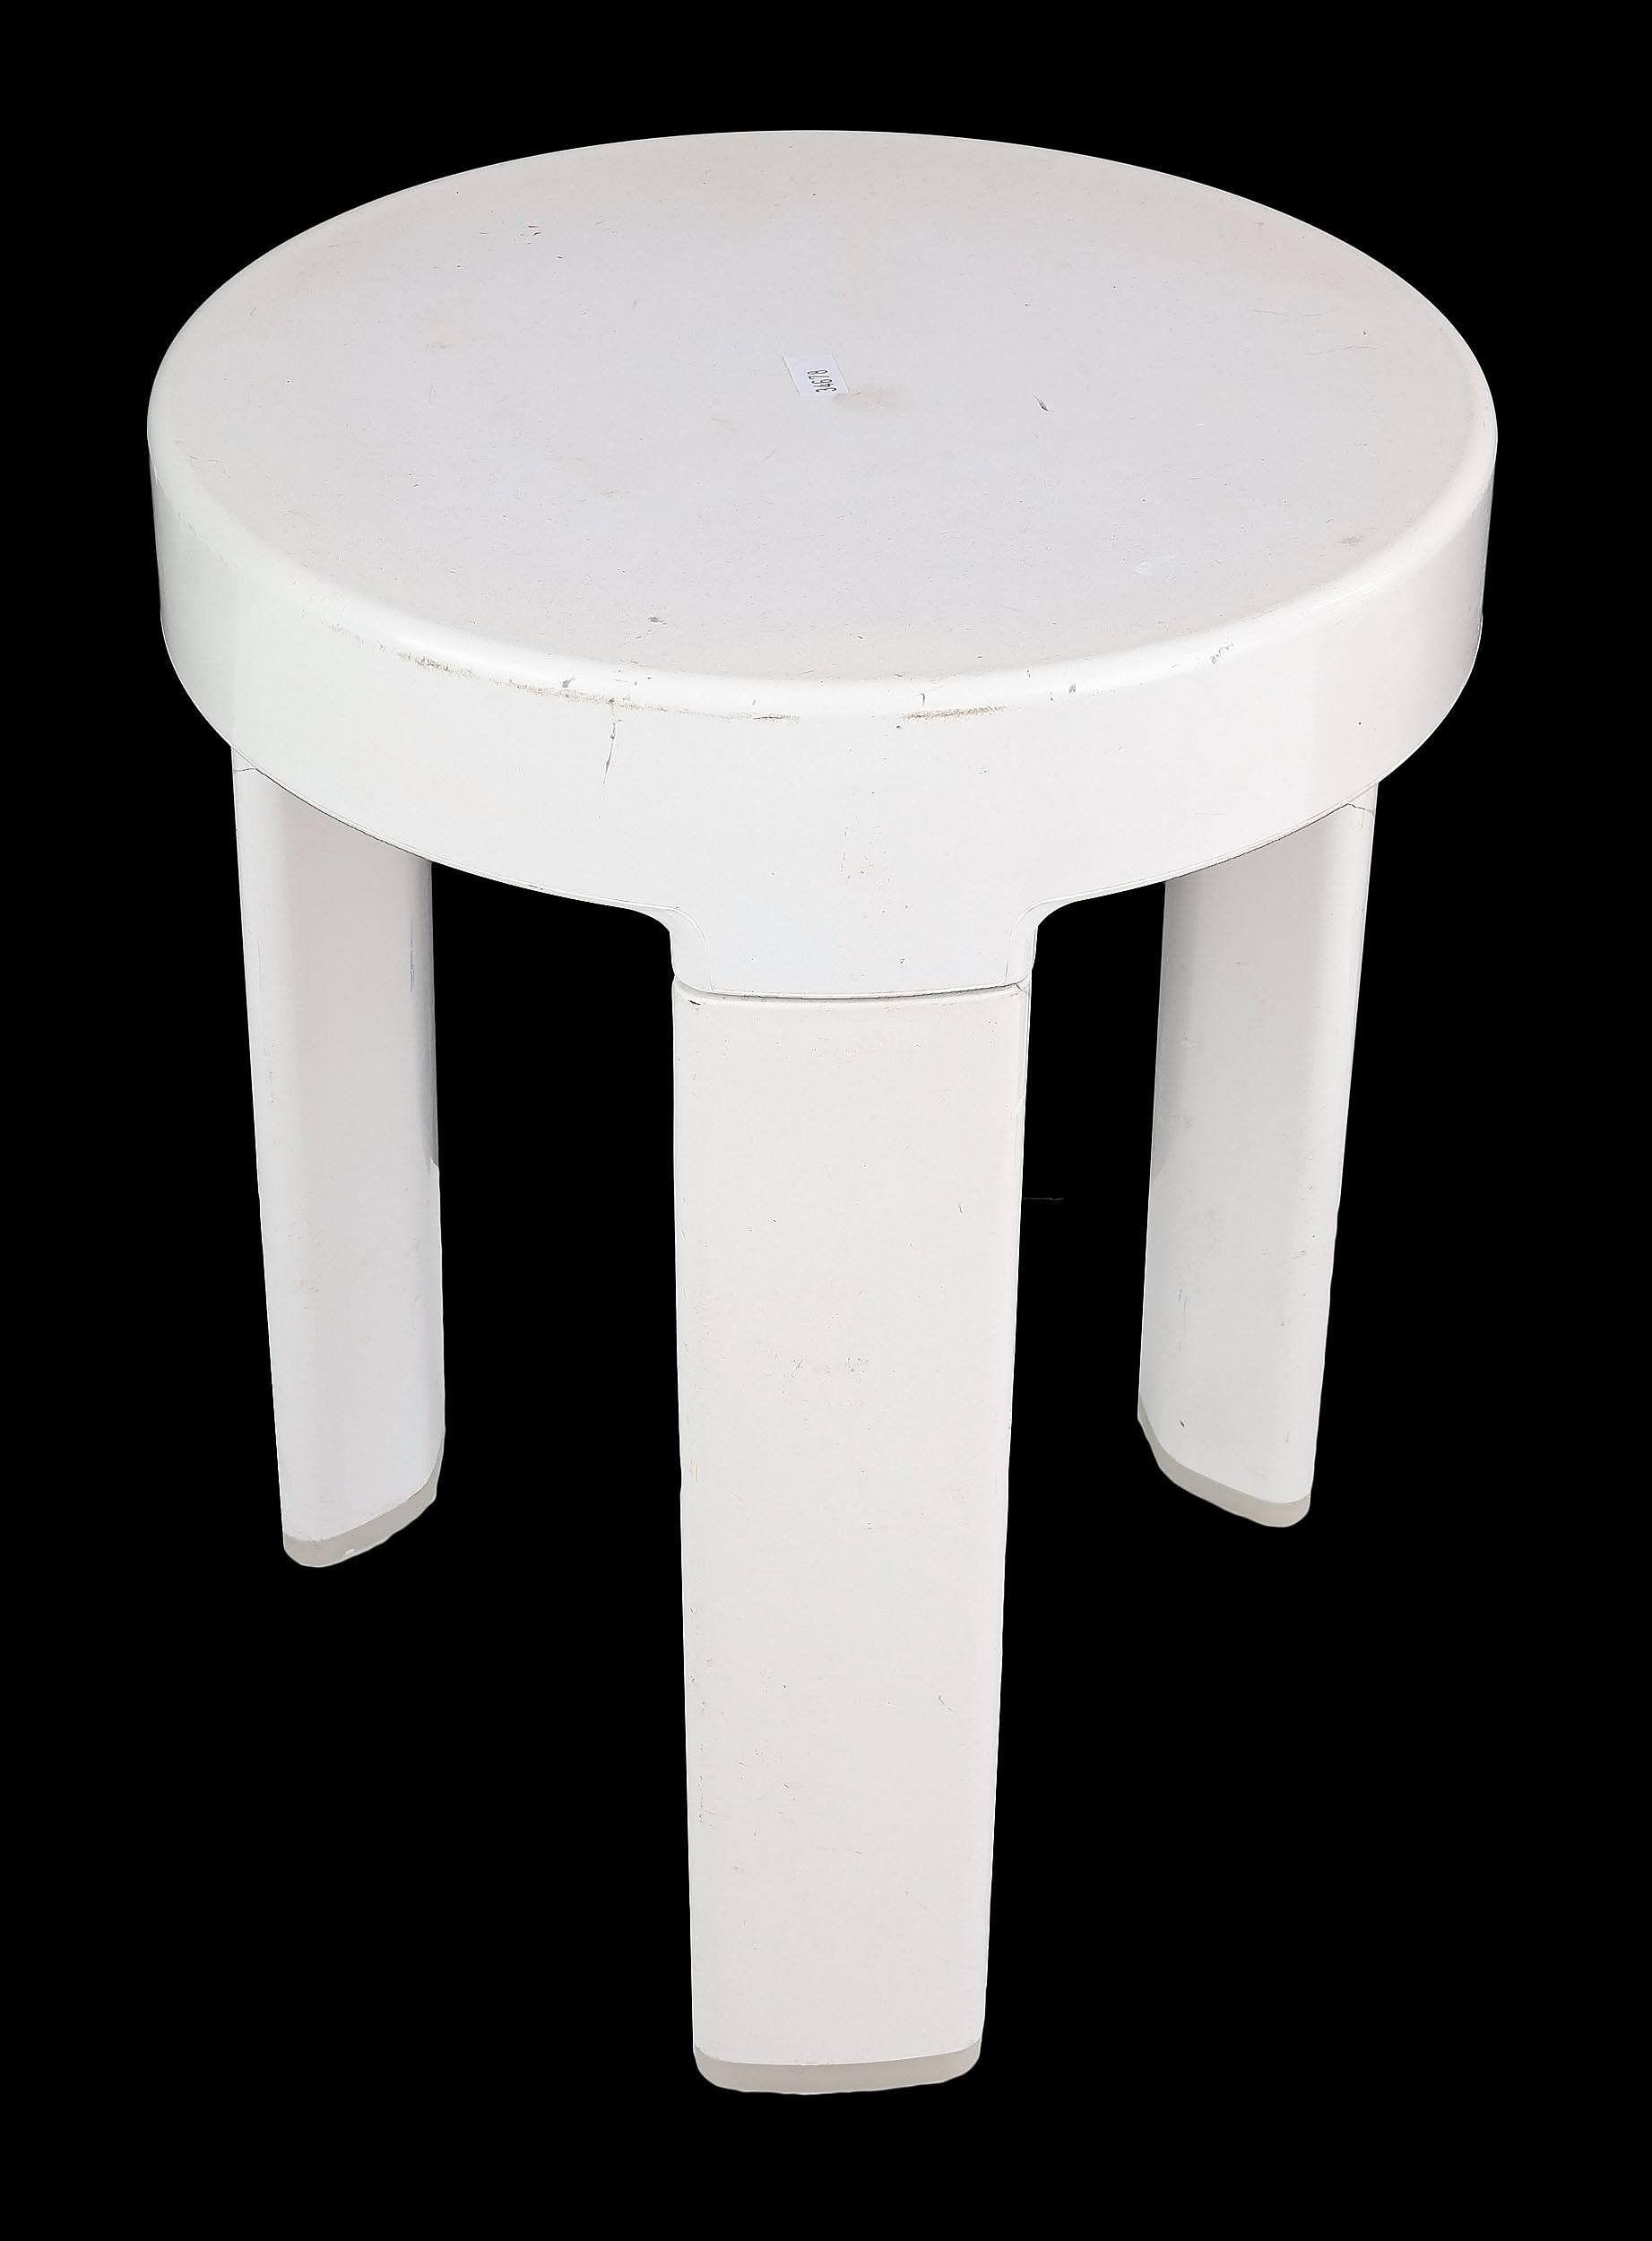 'Retro Pedigree Trivette by Royal Doulton Moulded Plastic Stool Circa 1980s'